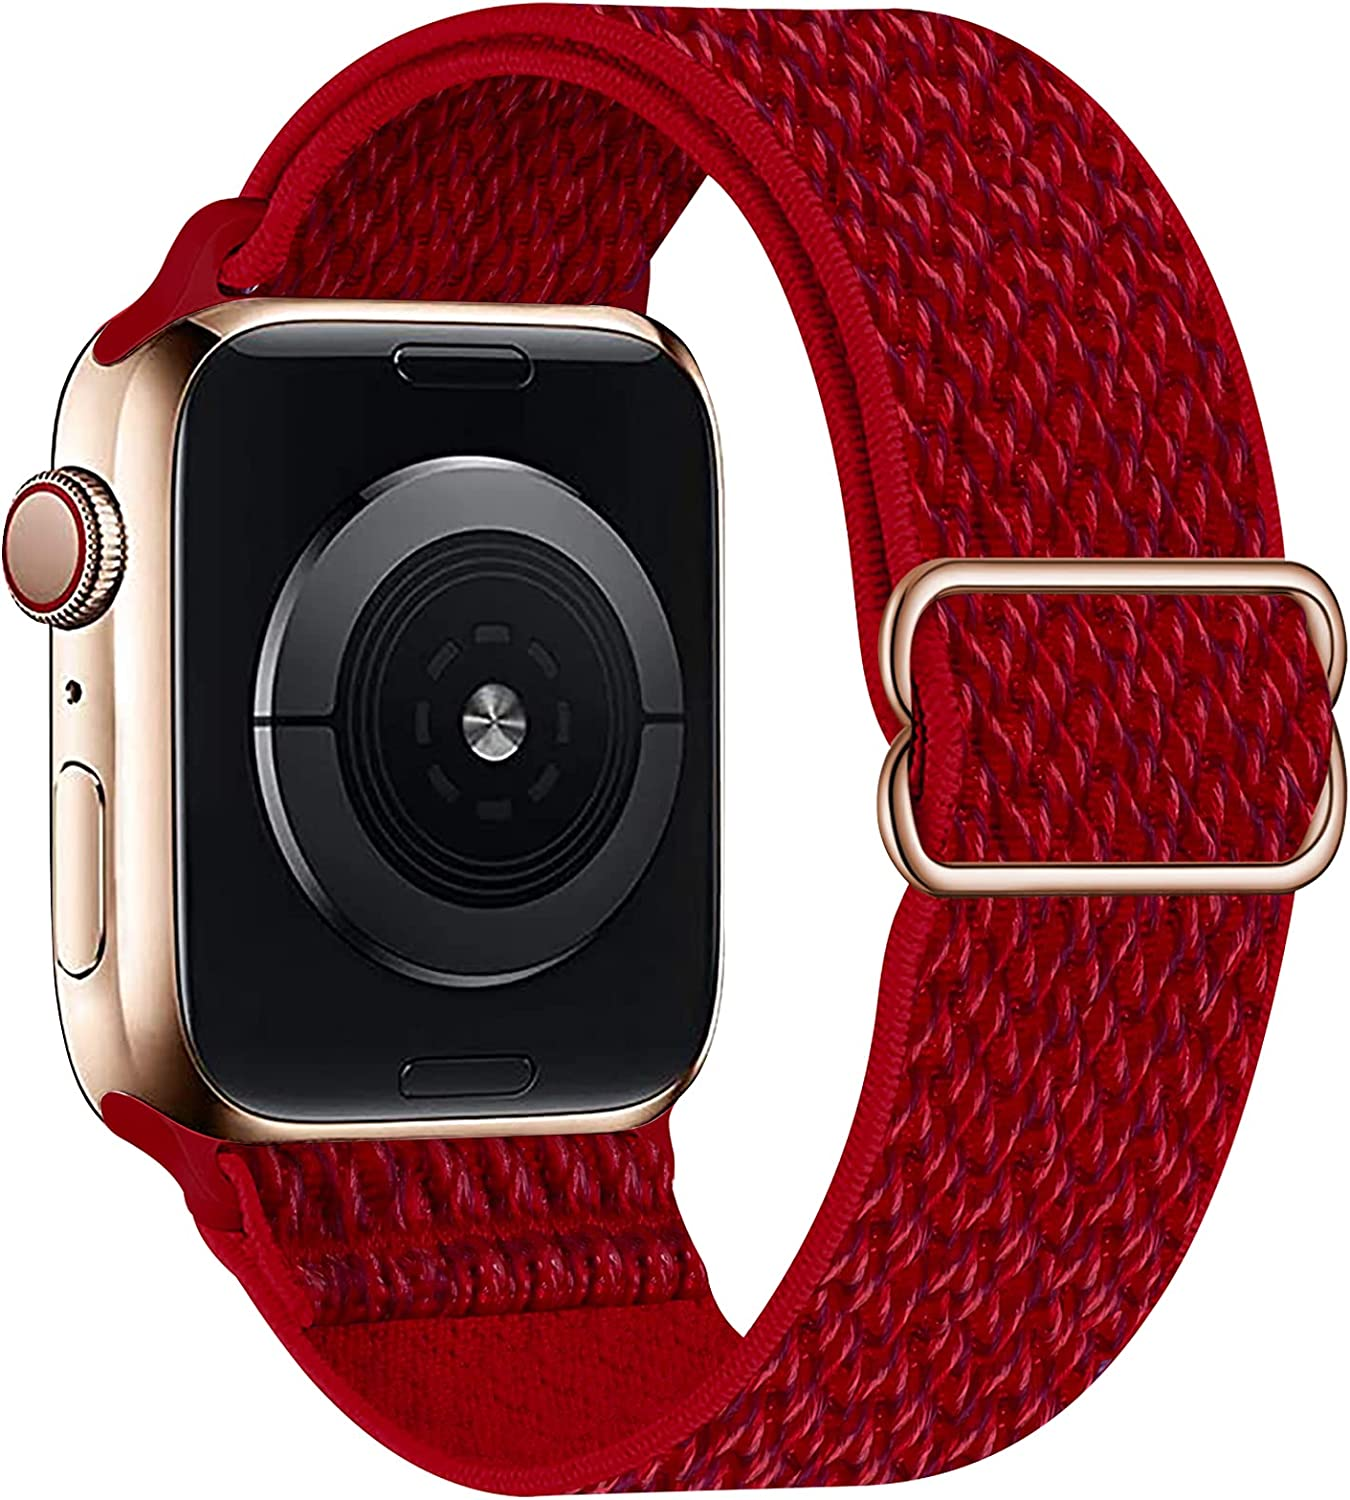 OHCBOOGIE Stretchy Solo Loop Strap Compatible with Apple Watch Bands 38mm 40mm 42mm 44mm ,Adjustable Stretch Braided Sport Elastics Weave Nylon Women Men Wristband Compatible with iWatch Series 6/5/4/3/2/1 SE